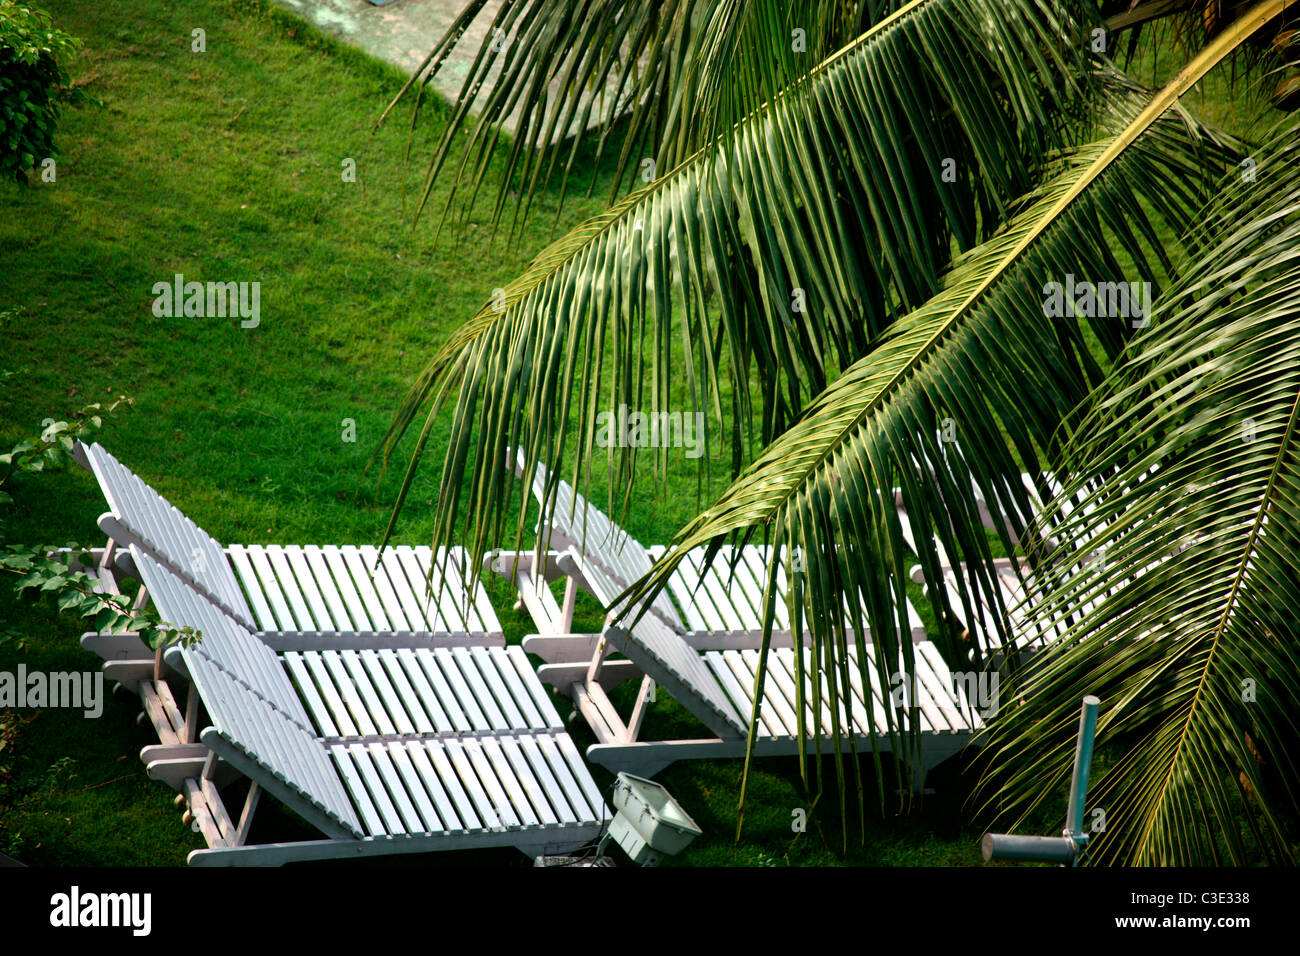 Garden chairs on lawn - Stock Image